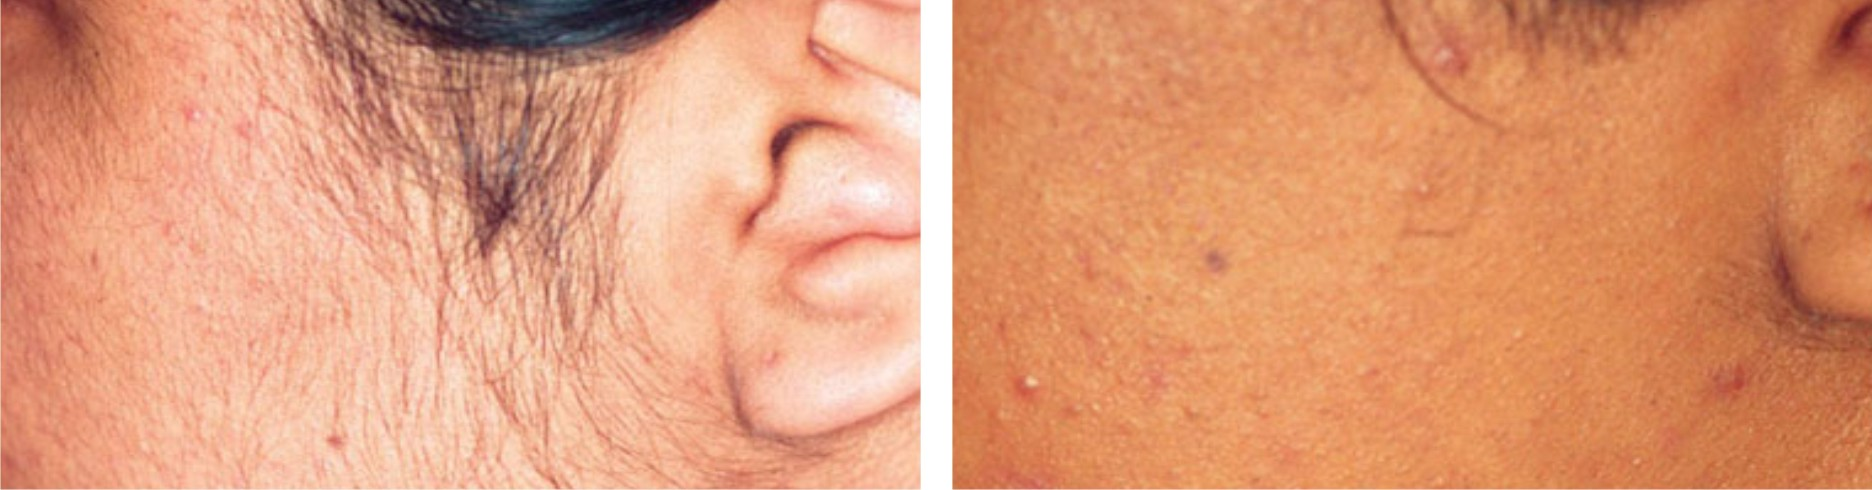 Laser Hair Removal Image One